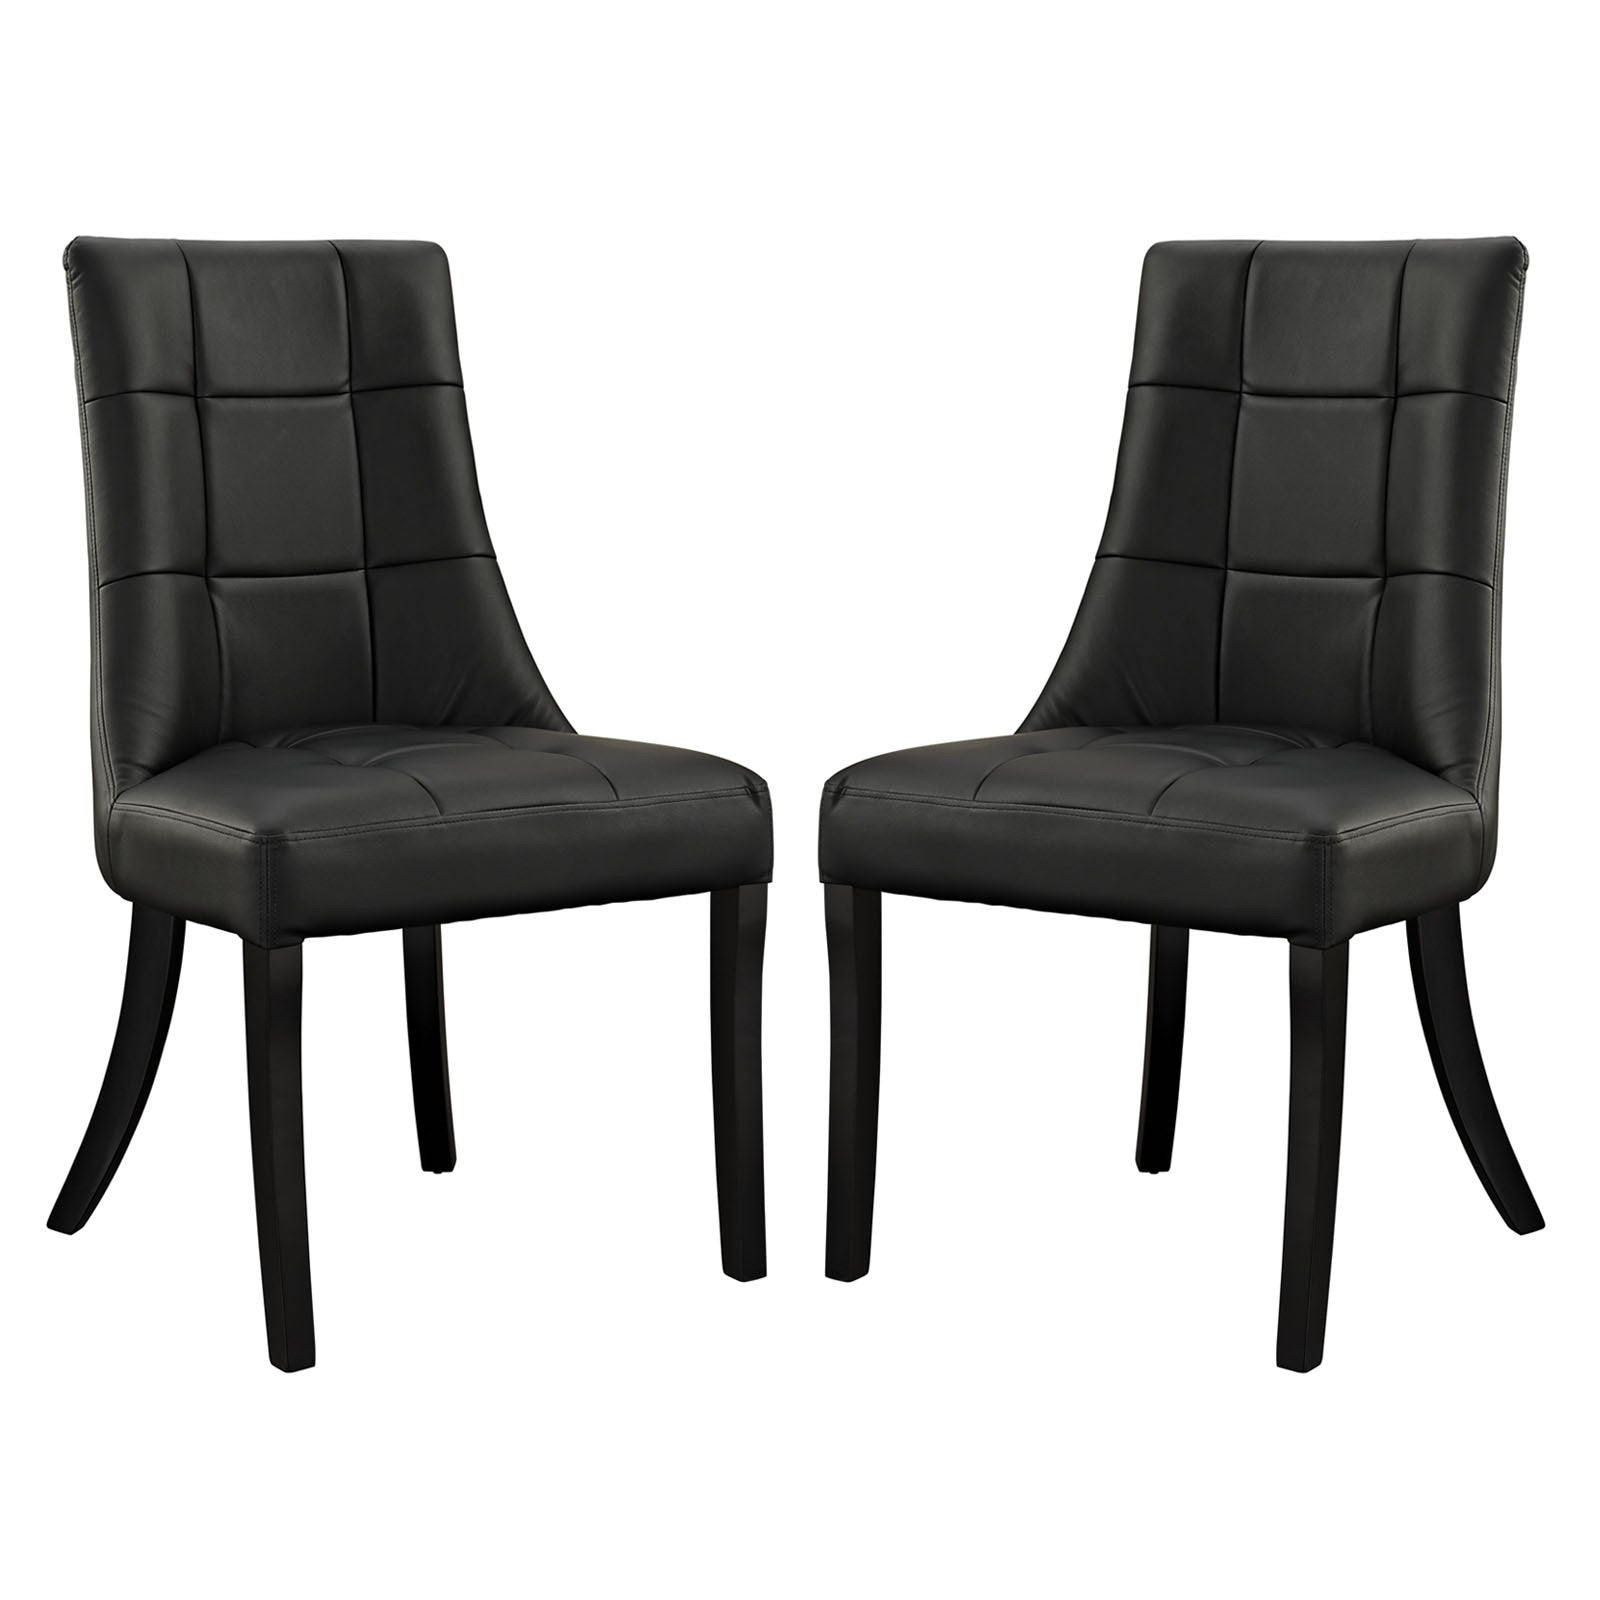 2 Chair Dining Set: Majesty Vinyl Dining Chair Set Of 2